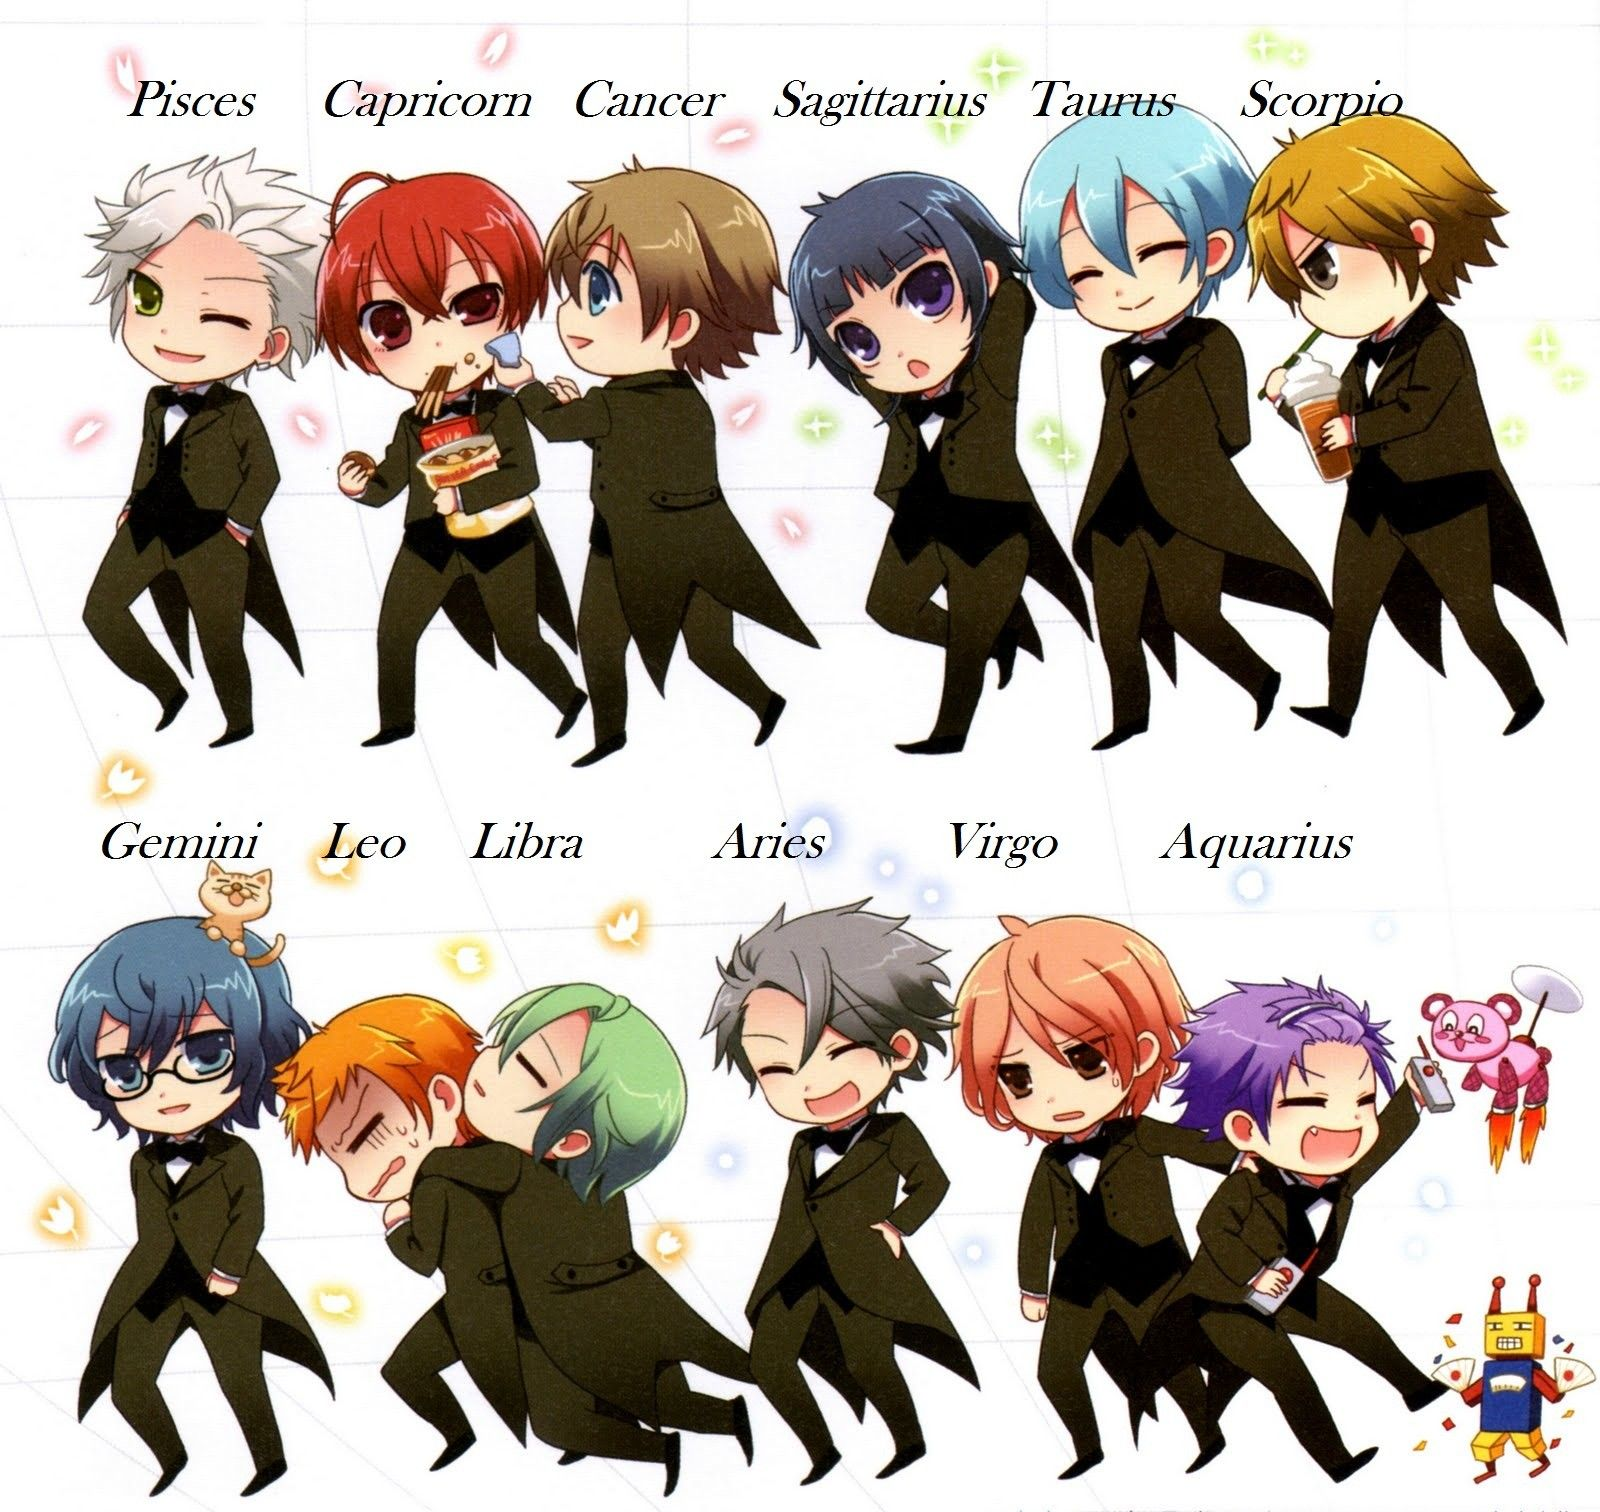 Anime Characters Zodiac Signs : A japanese anime based on zodiac signs super cute